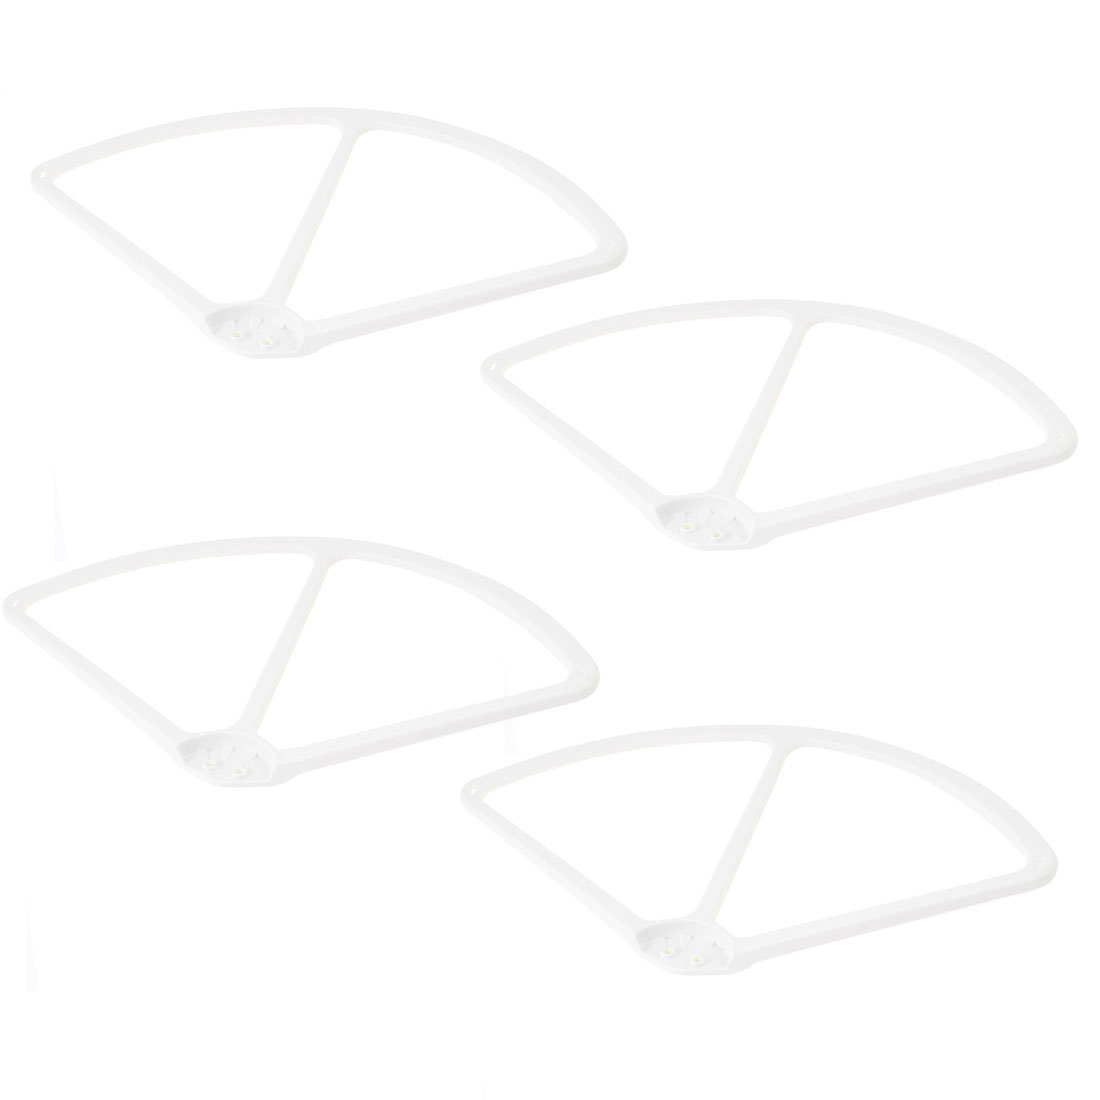 "4 Pcs White Plastic Propeller Prop Protective Guard Bumper 9"" for DJI Phantom 2 Vision Quadcopter"